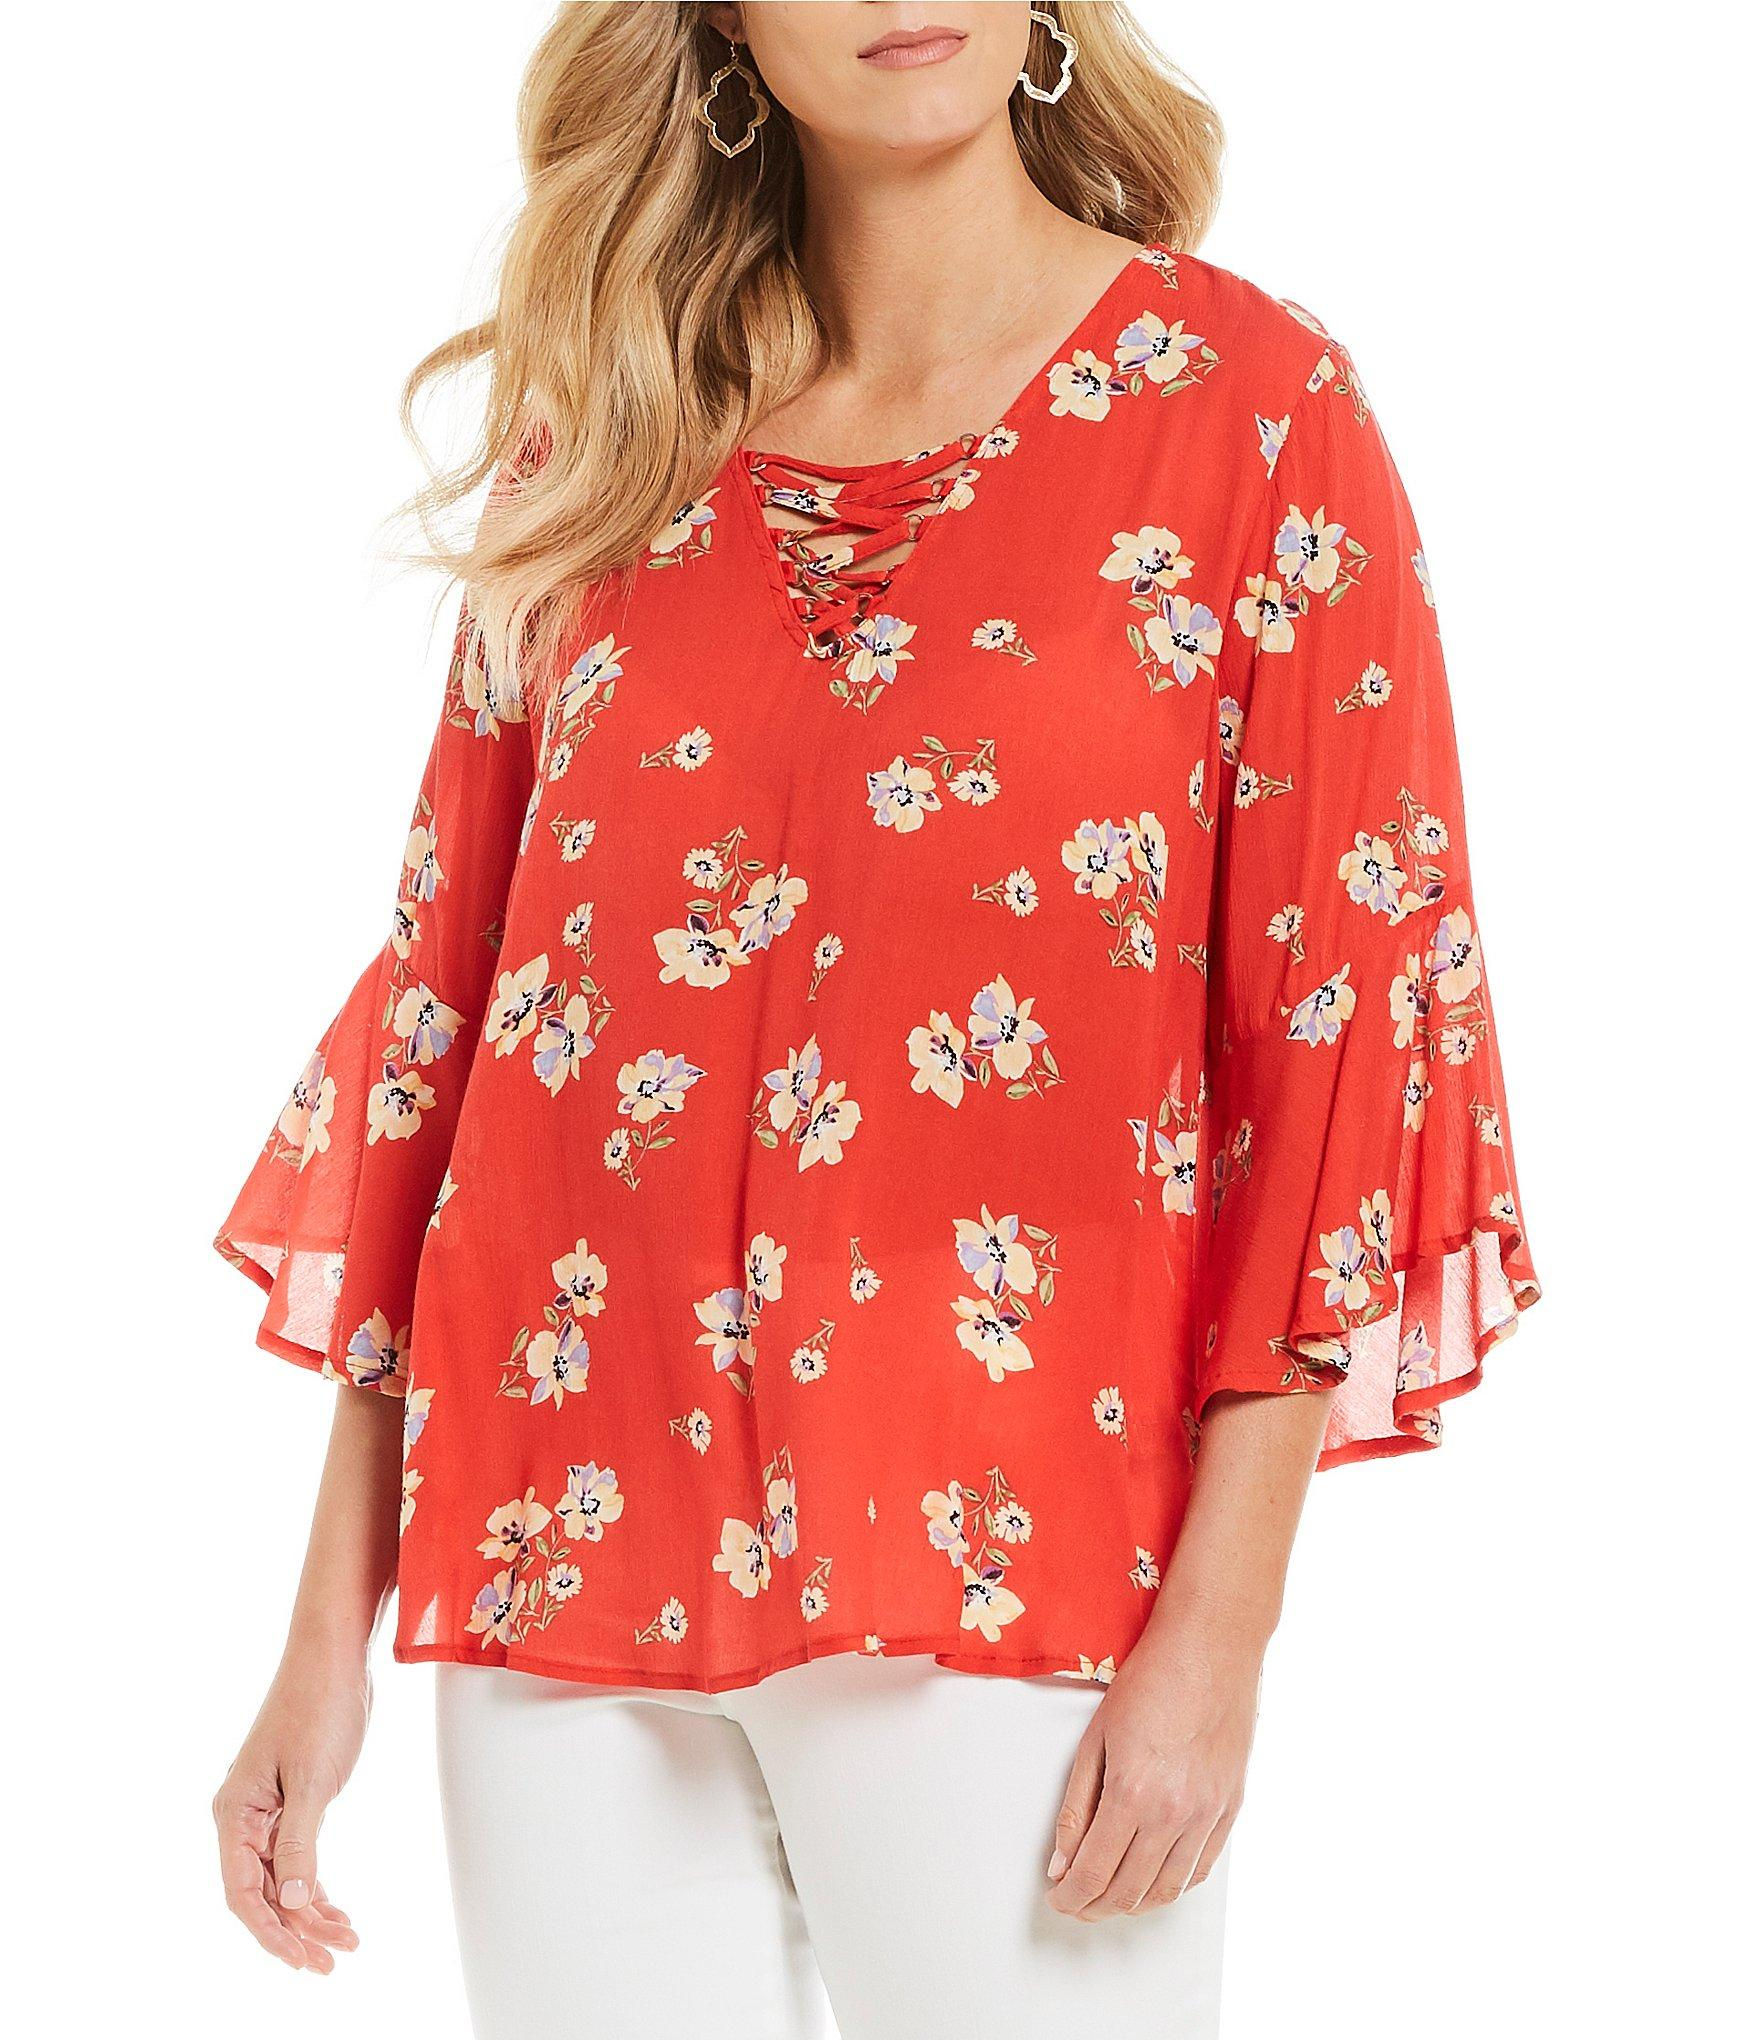 870dbc98bd2 Lyst - Democracy Lace-up V-neck Poppy Print High-low Hem Top in Red